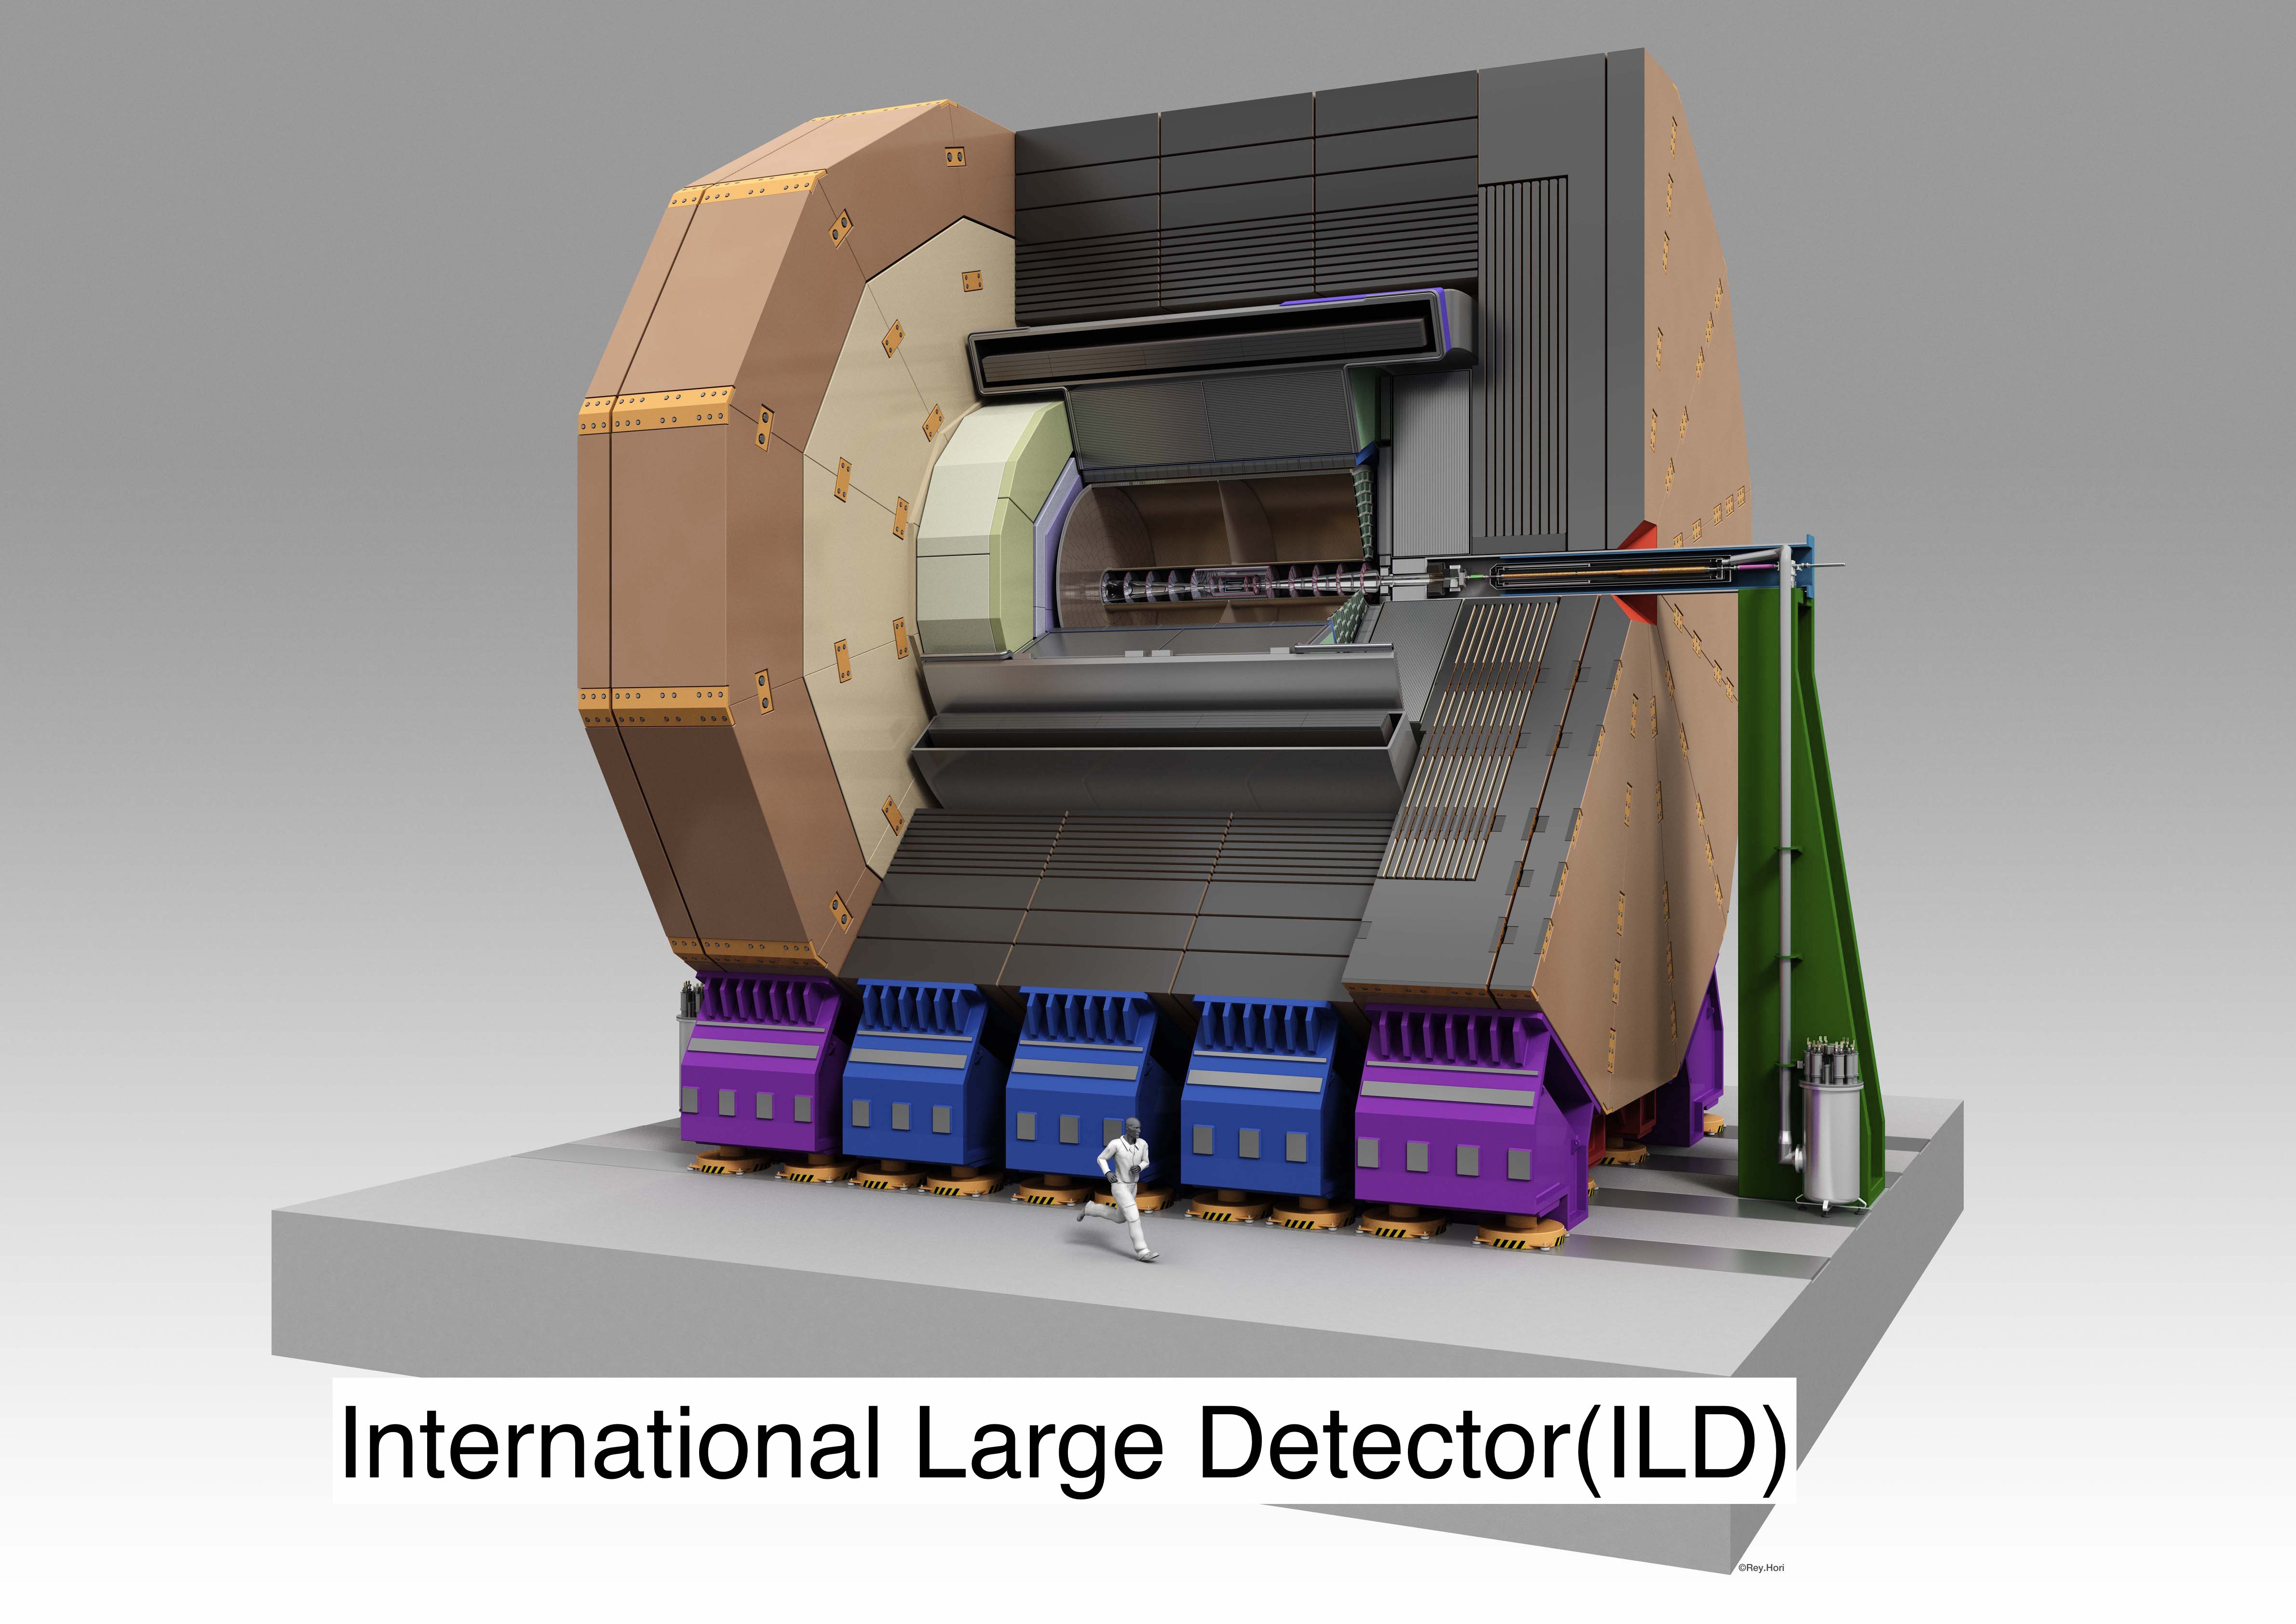 International Large Detector